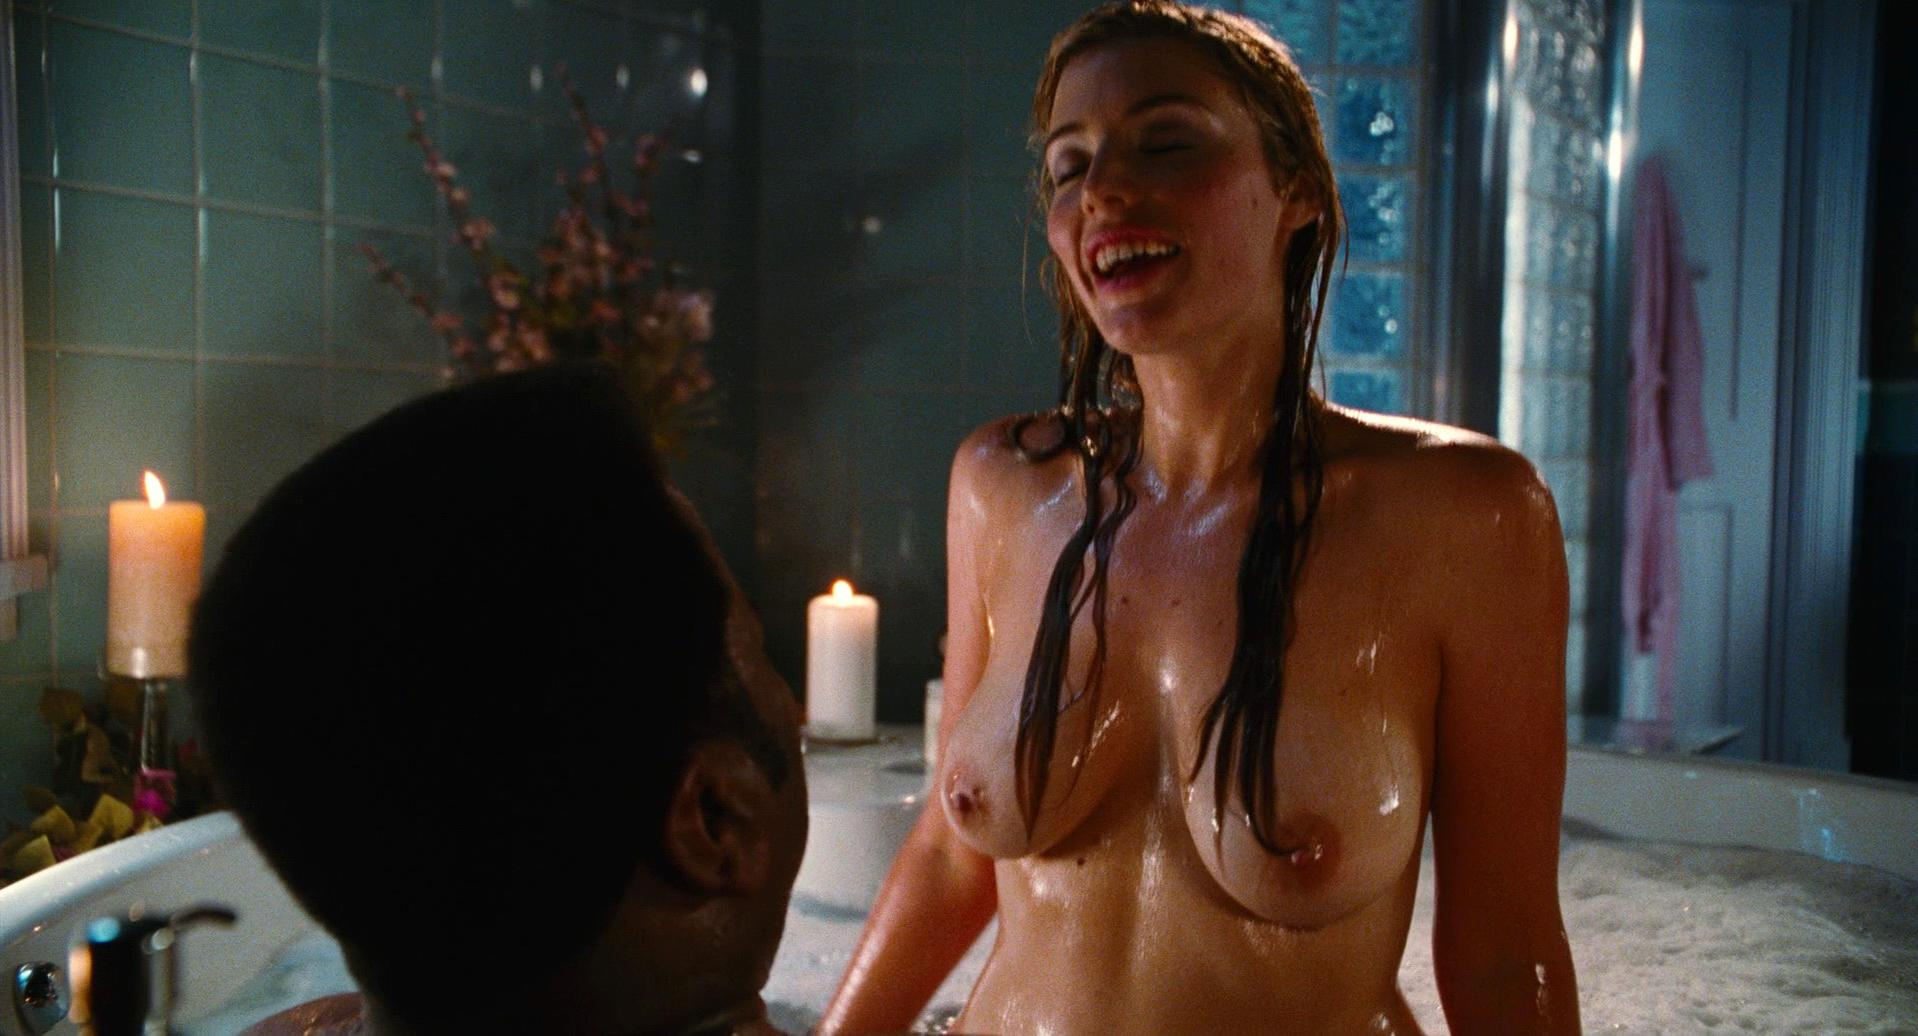 Final, sorry, hot tub time machine jessica pare nude accept. The